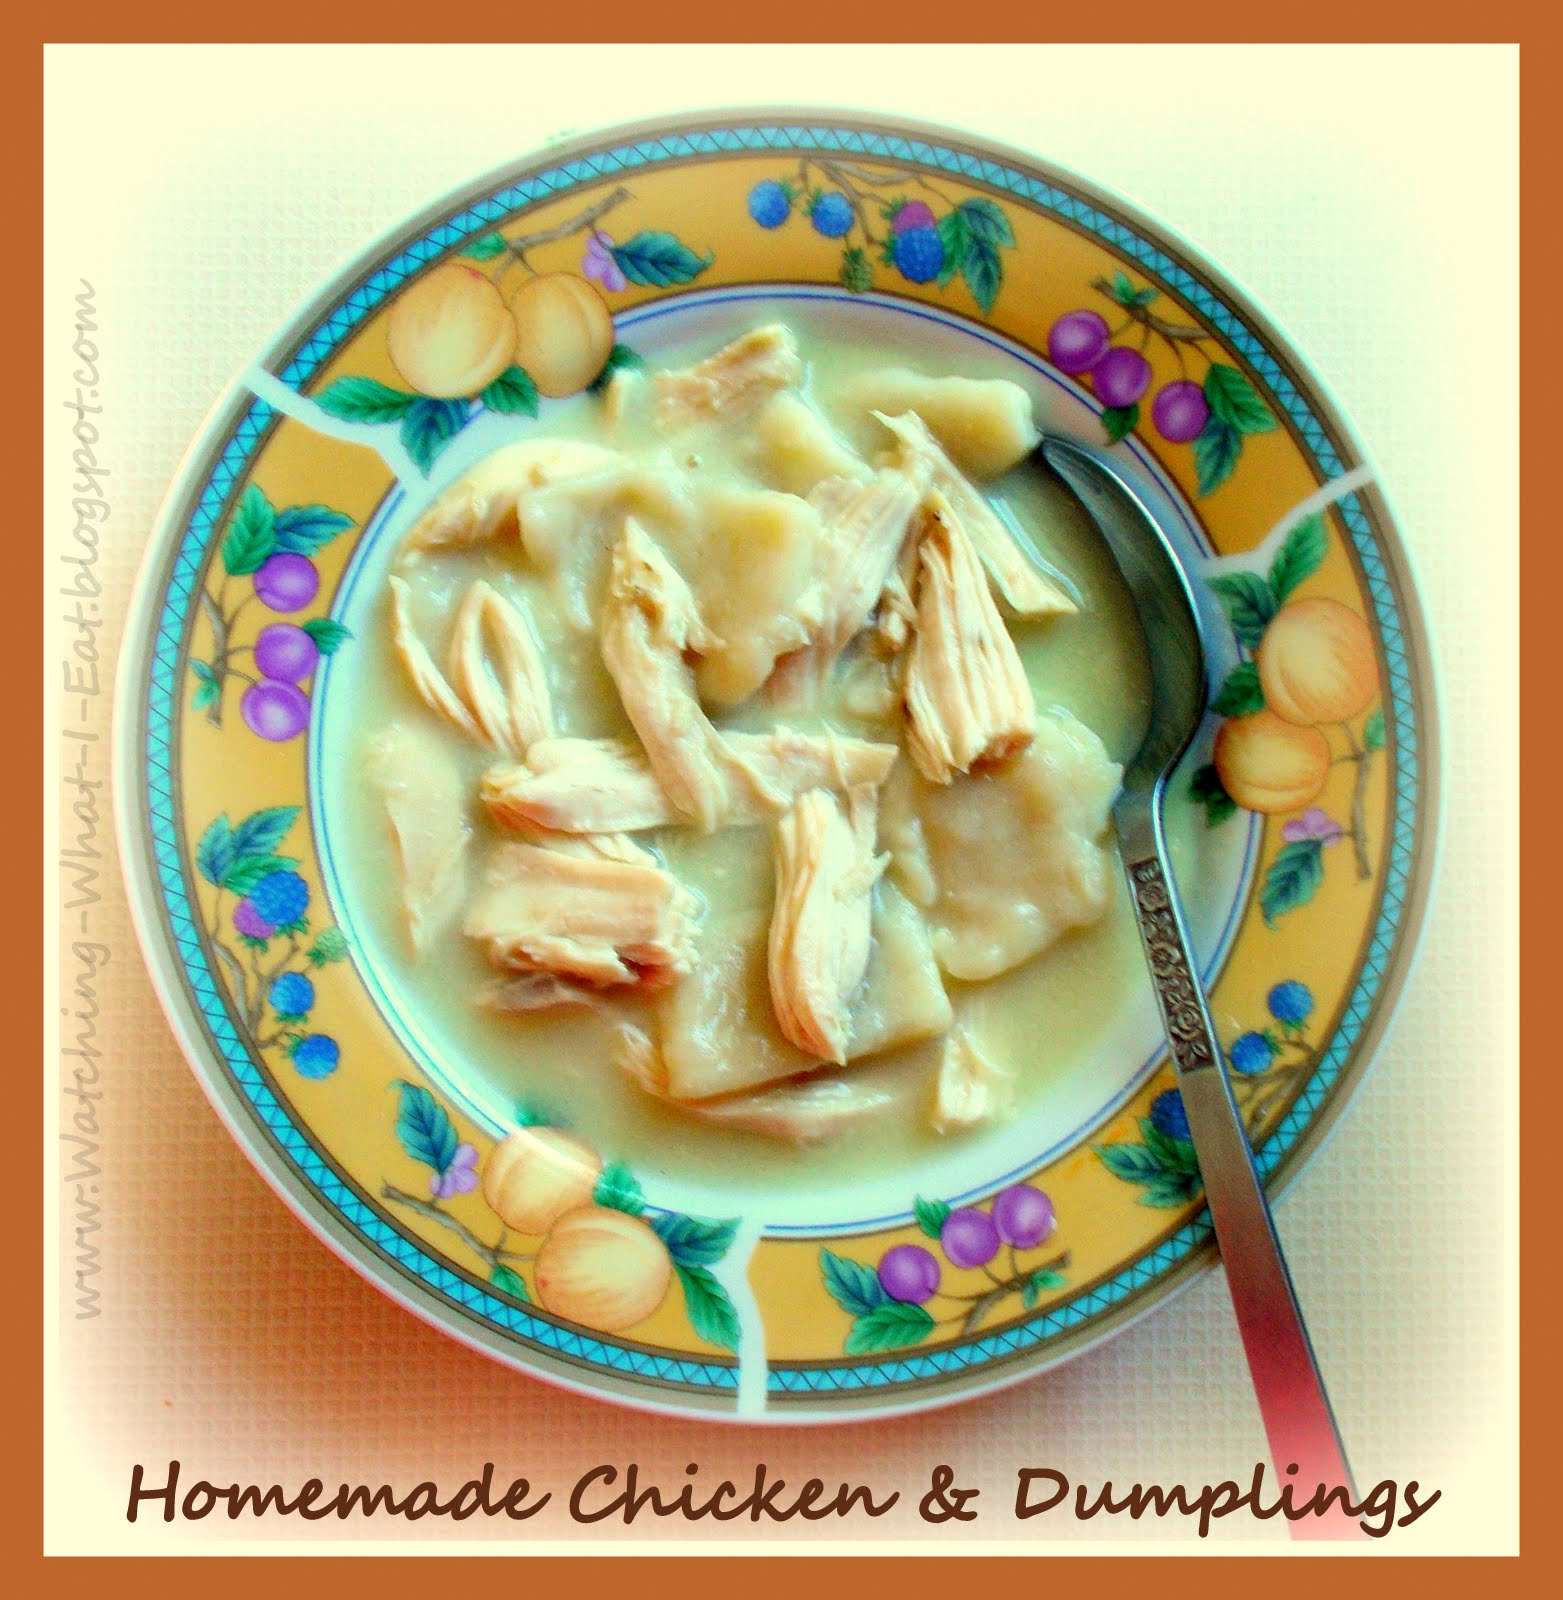 Watching What I Eat: Homemade Chicken & Dumplings